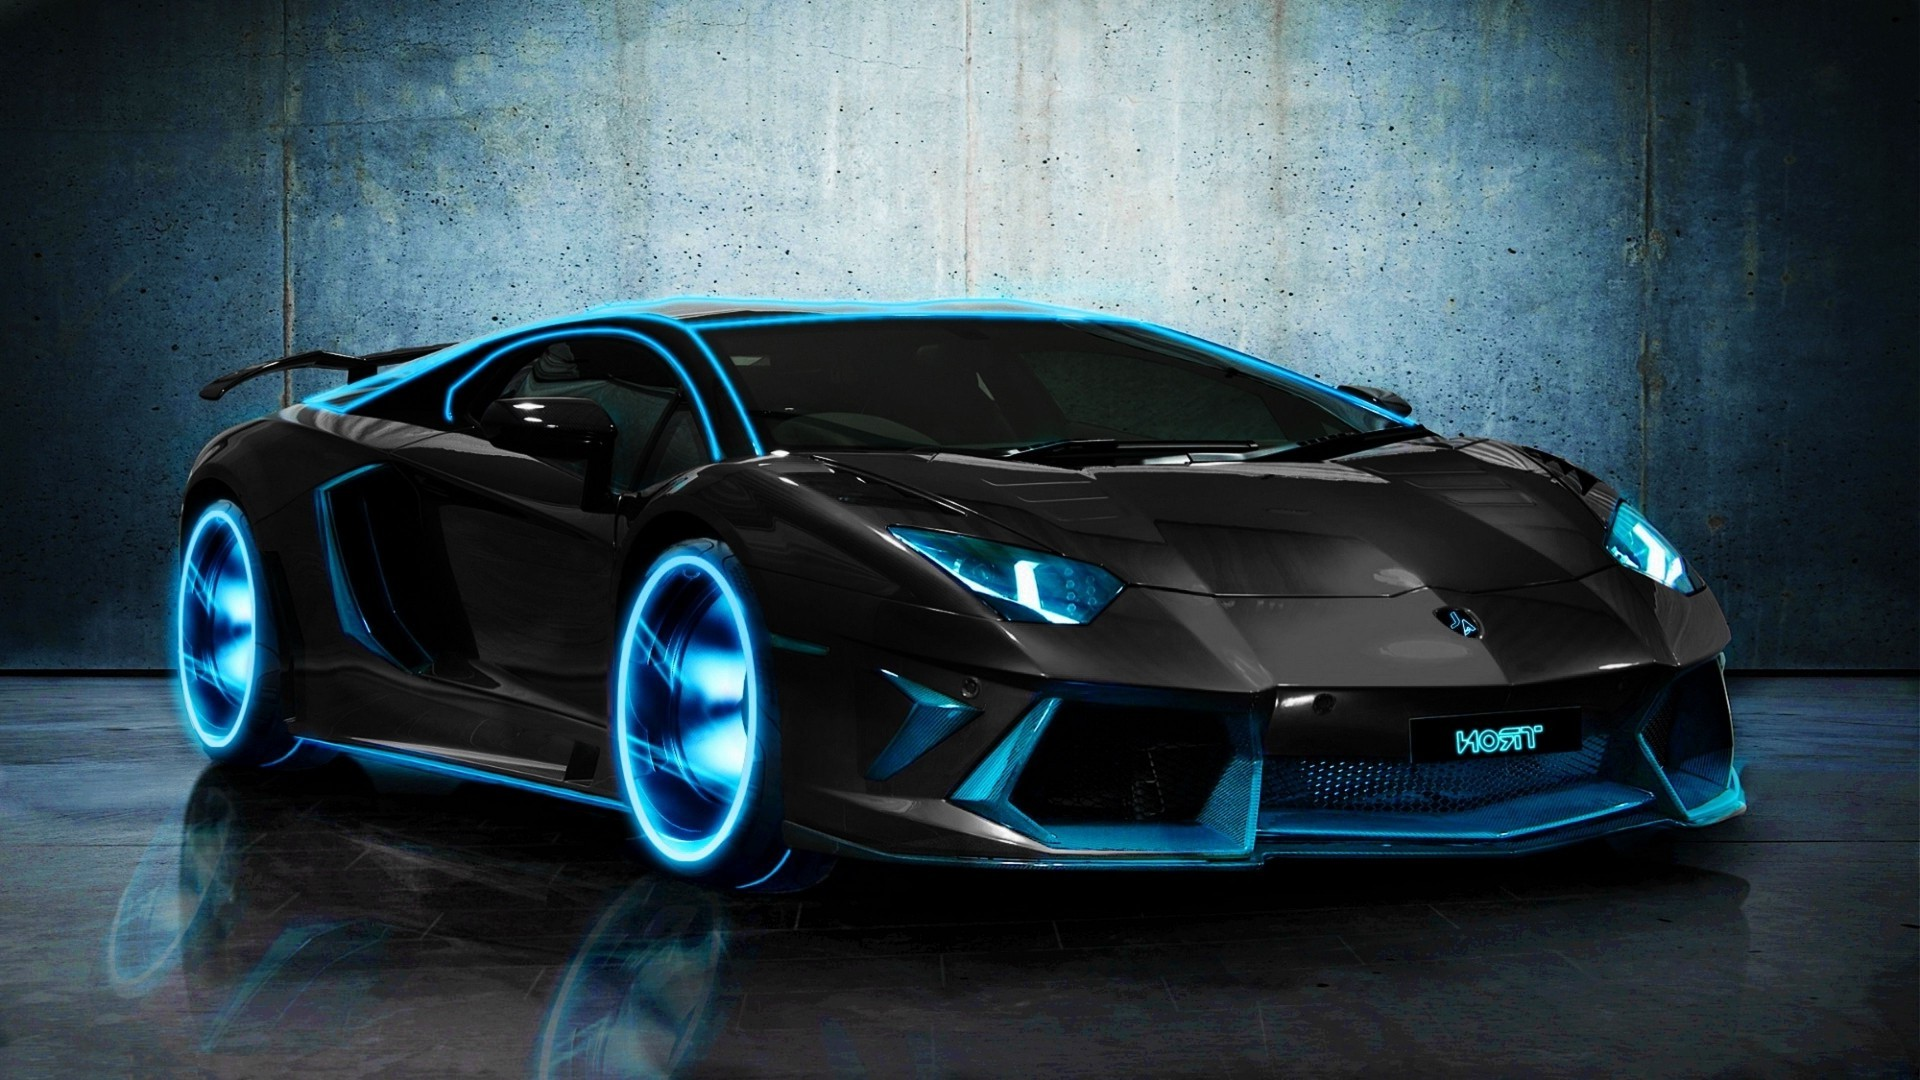 Lamborghini Cars Wallpapers topcarsscom 1920x1080